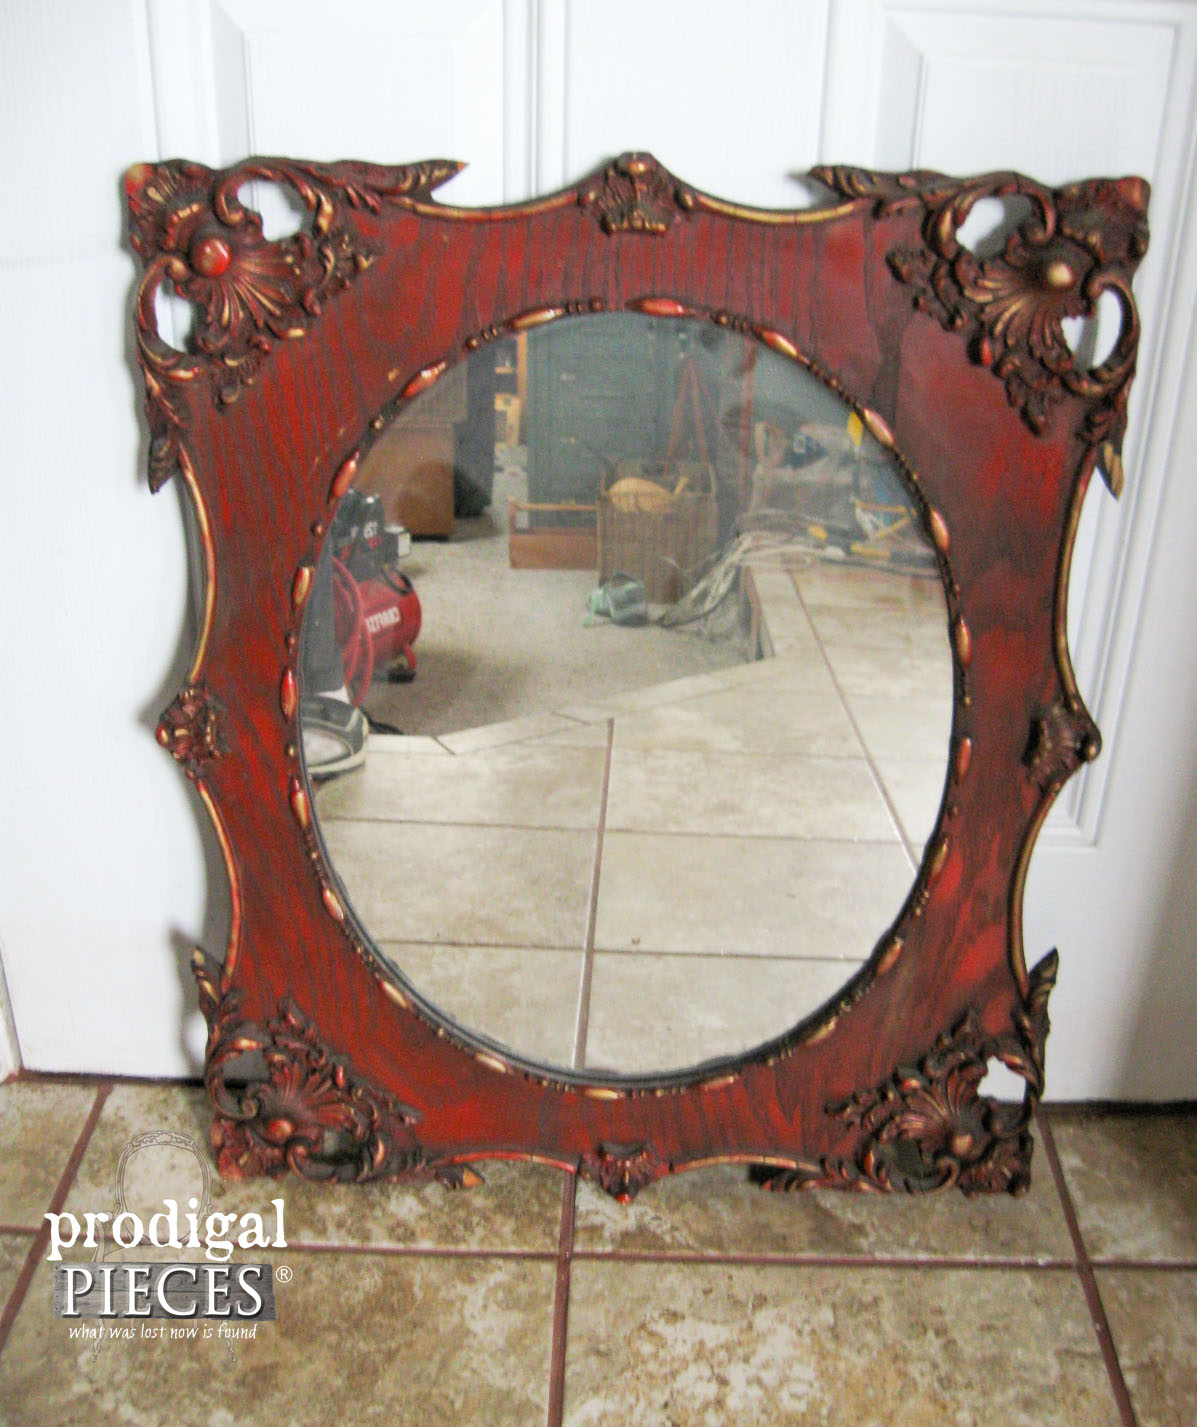 Ornate Vintage Mirror Before Aged Finish | Prodigal Pieces | www.prodigalpieces.com